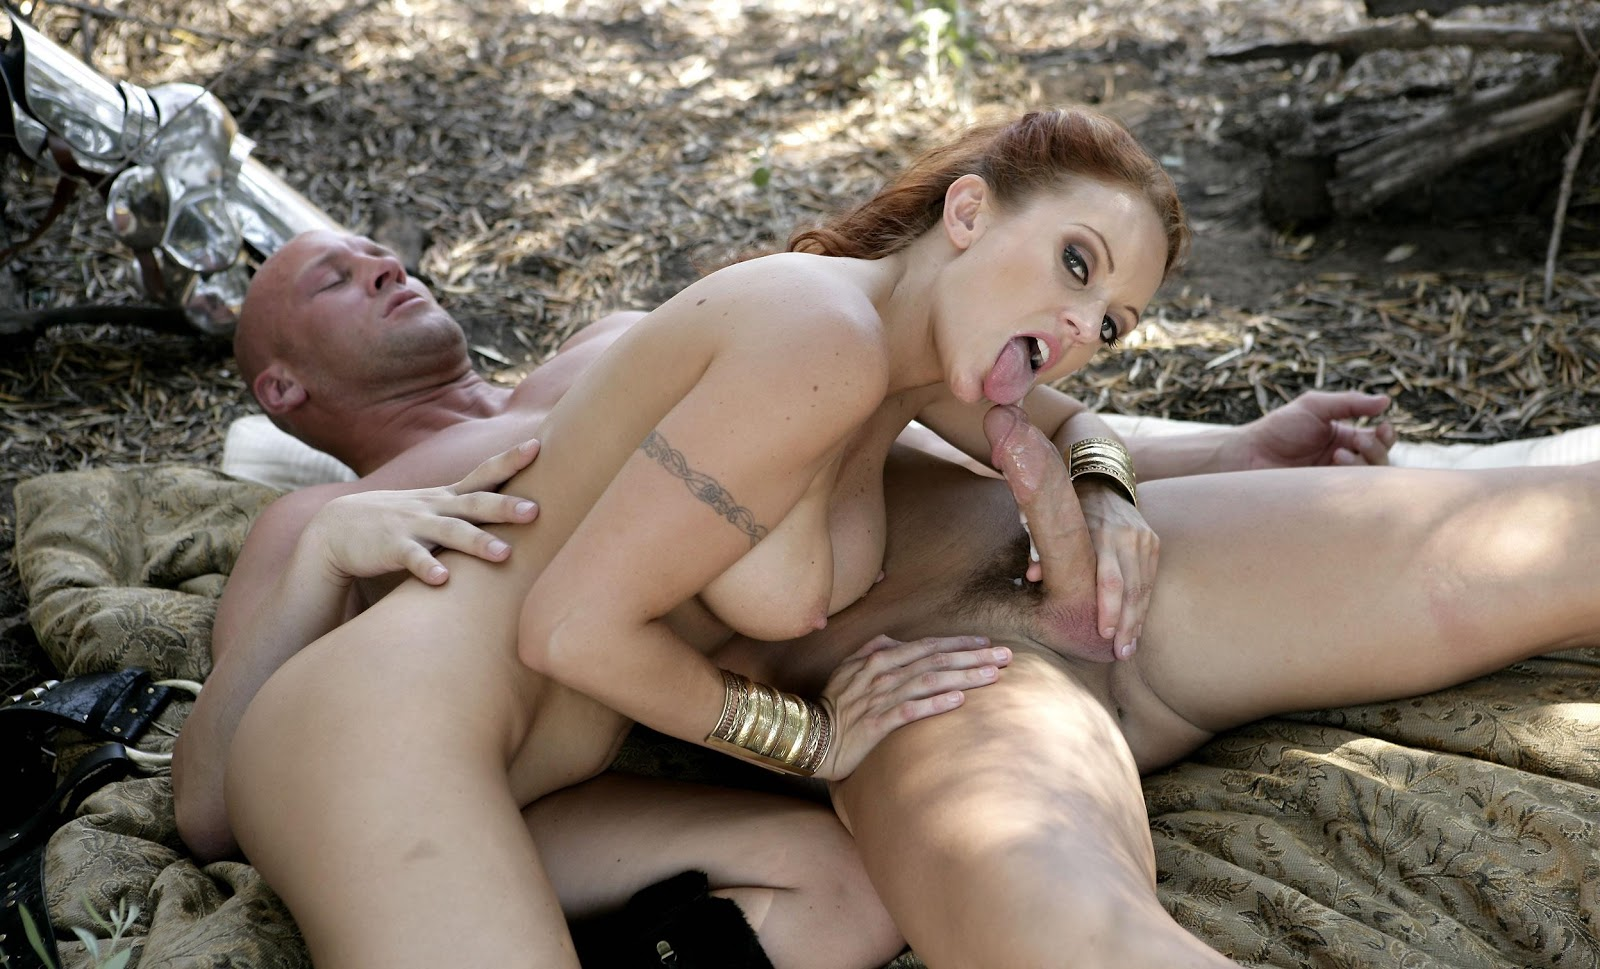 Rocco siffredi nails 2 dick hungry workout sluts 4